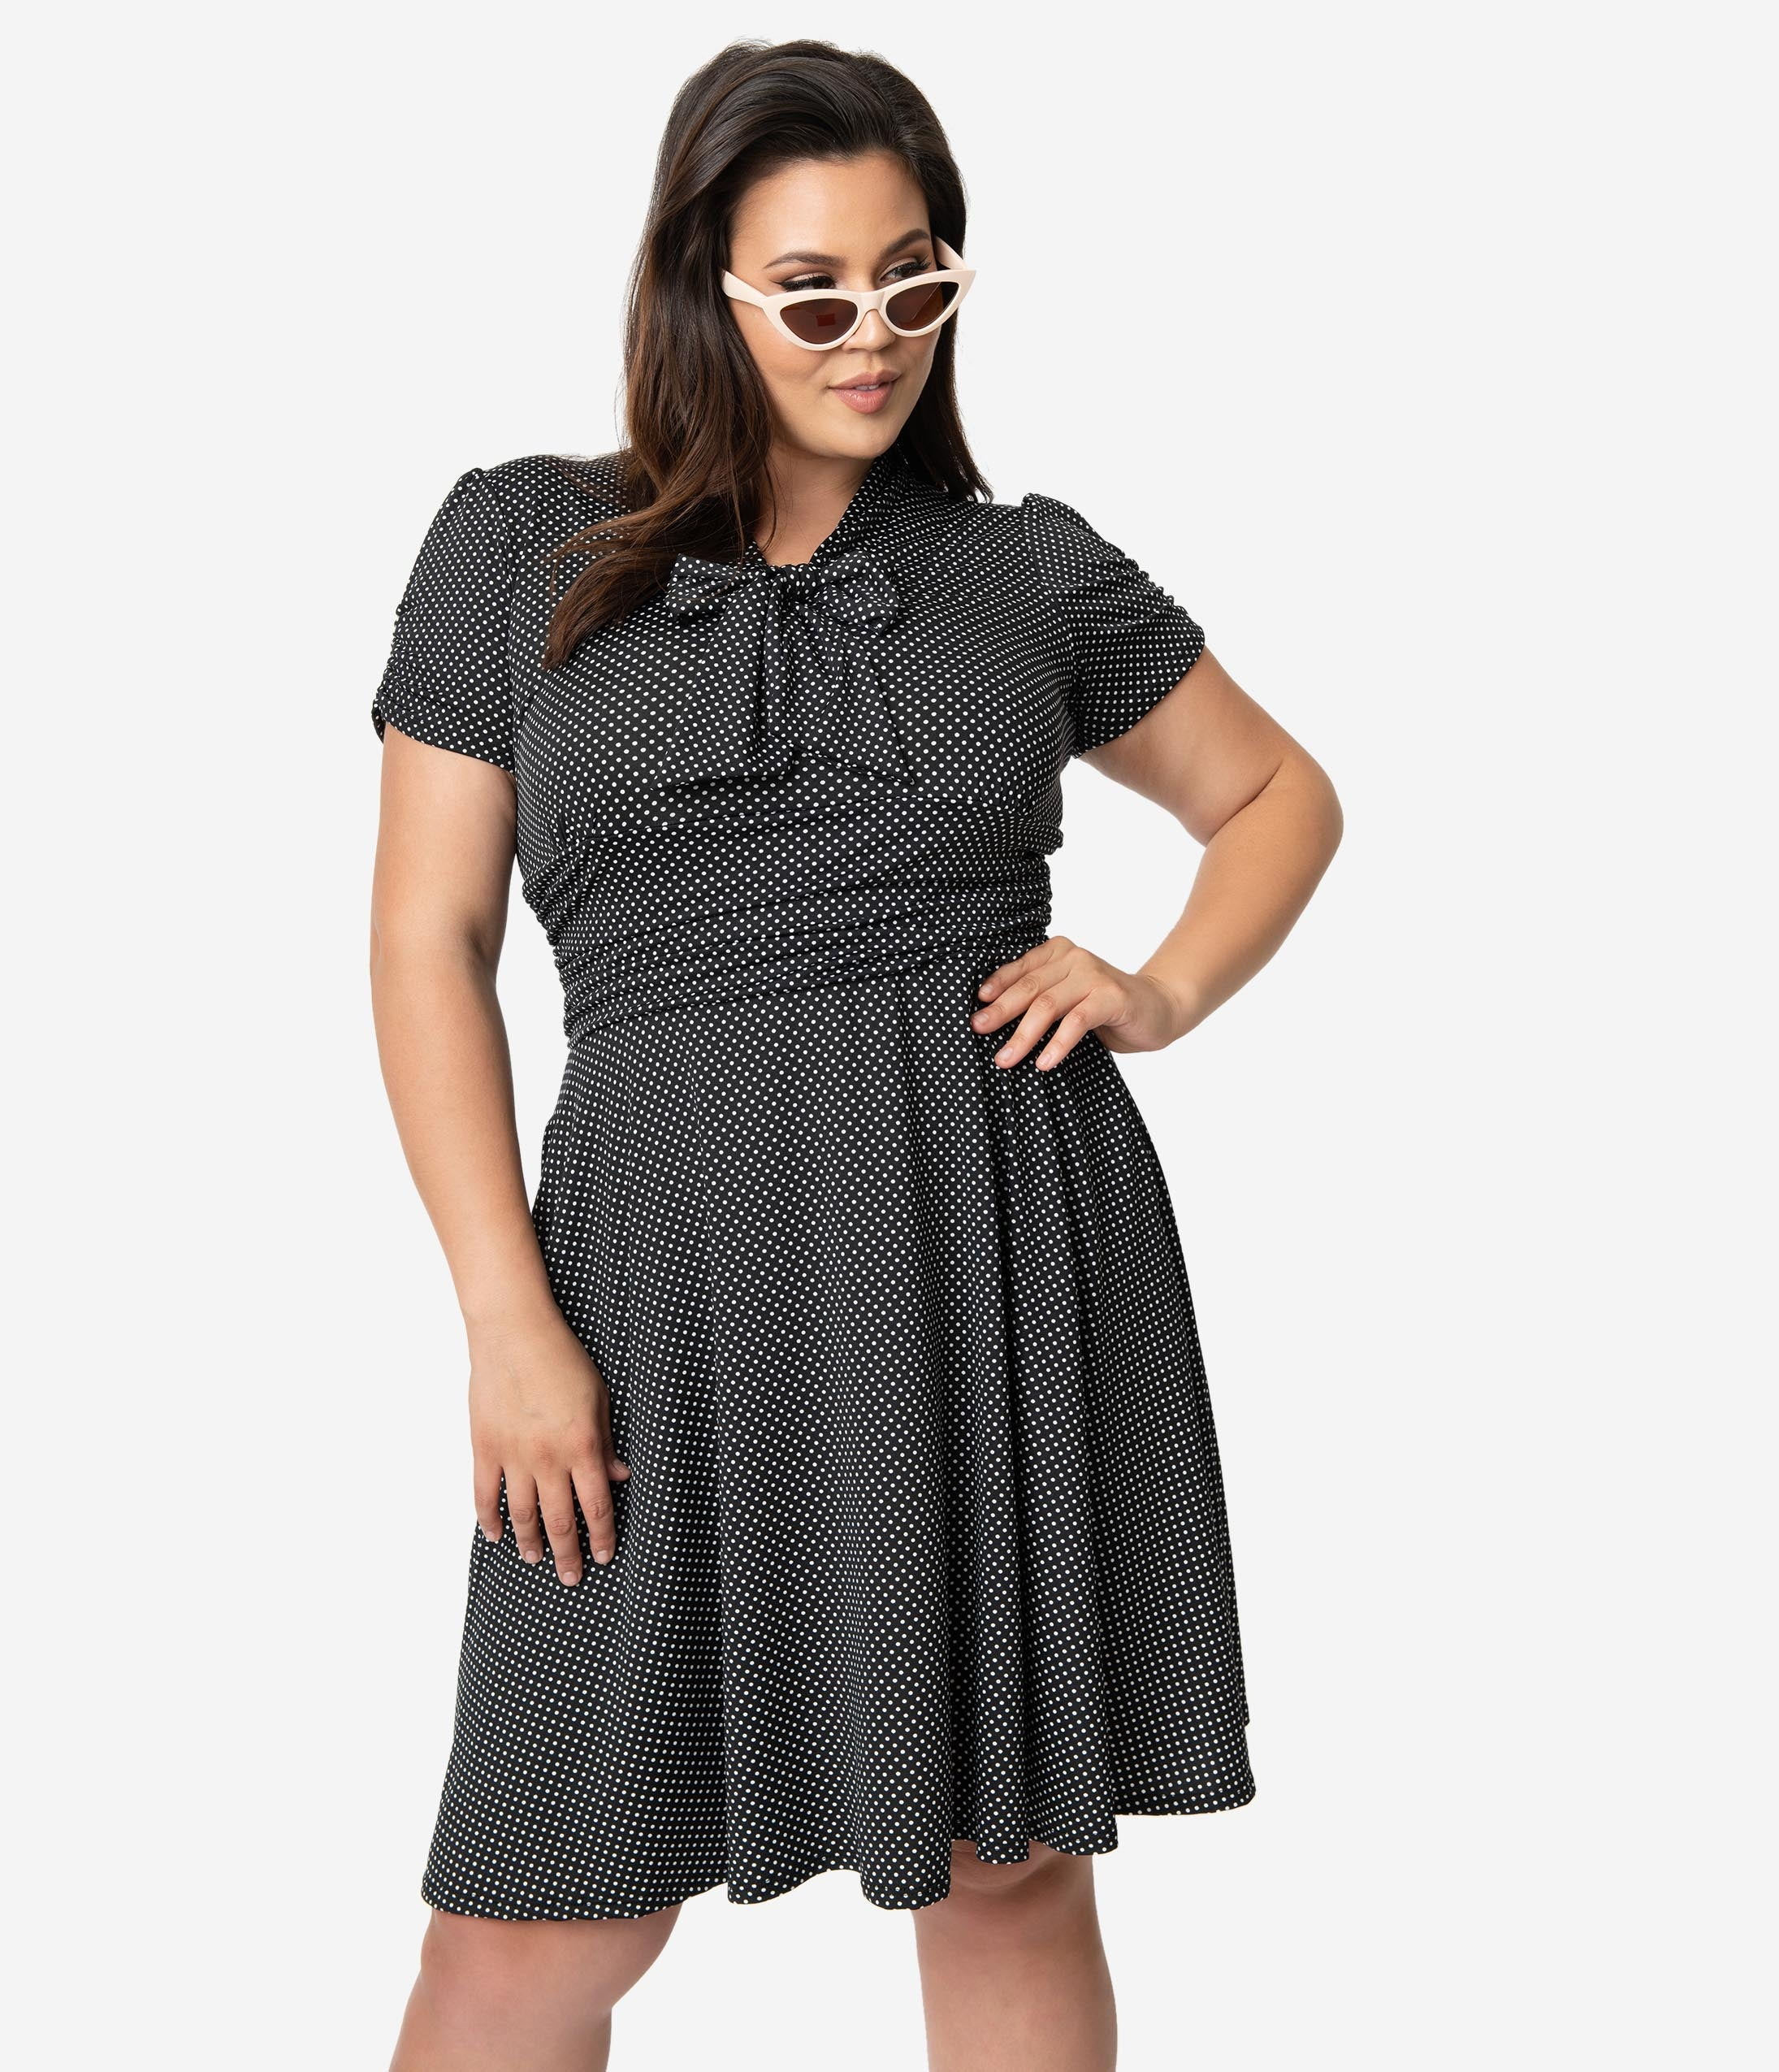 1940s Plus Size Fashion: Style Advice from 1940s to Today Folter Plus Size Black  White Pin Dot Print Short Sleeve Fit  Flare Dress $54.00 AT vintagedancer.com